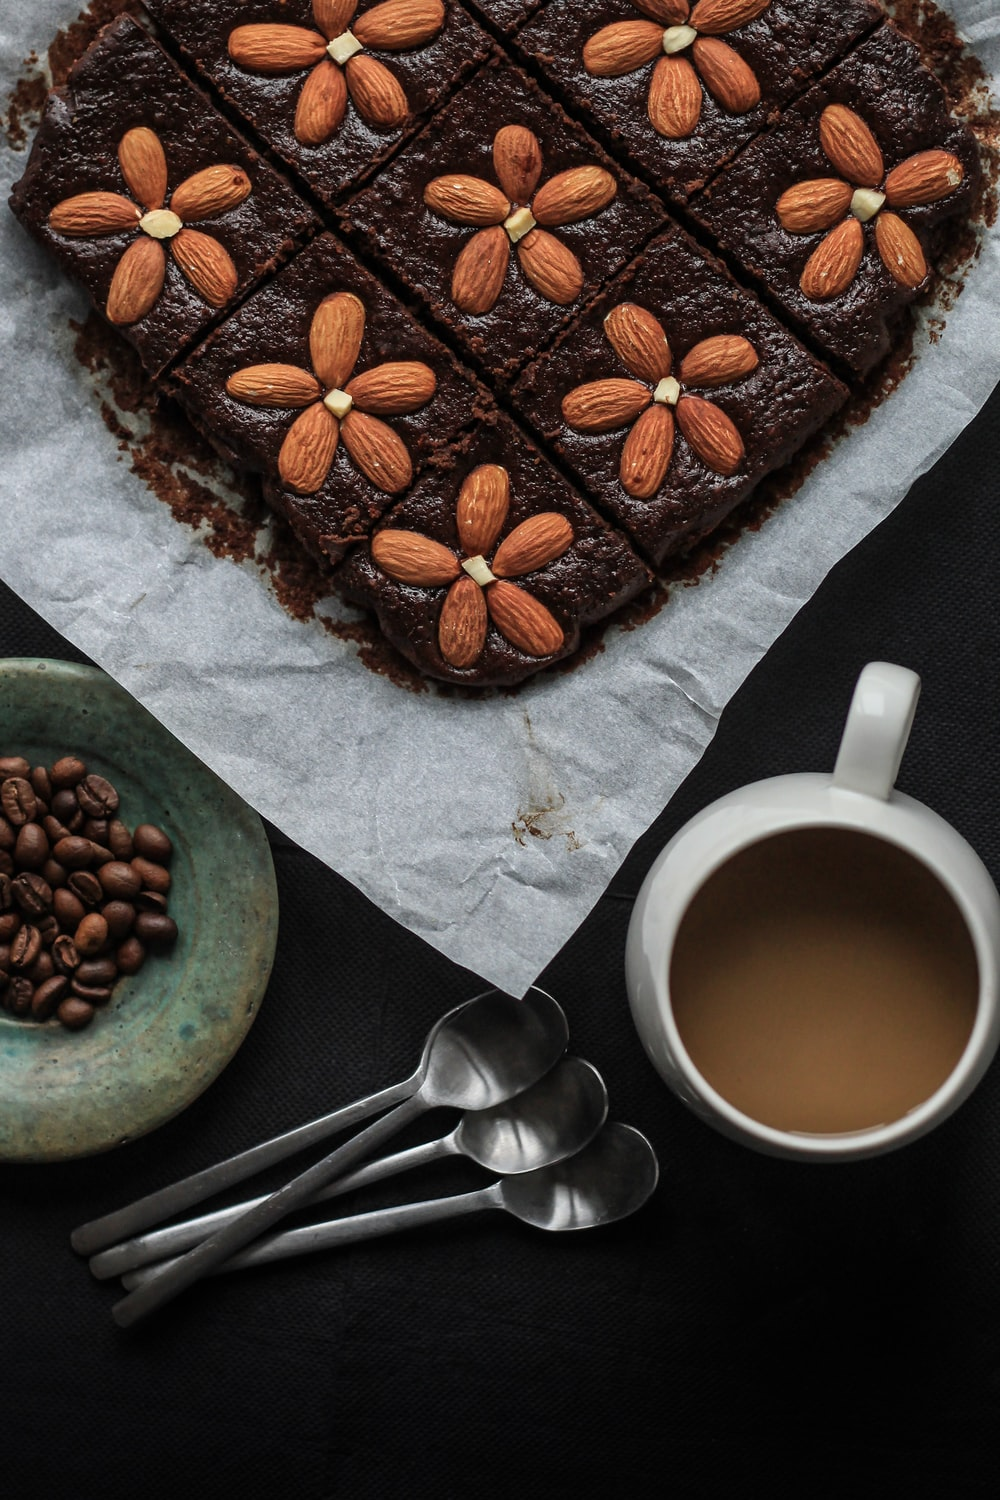 cake top with almonds